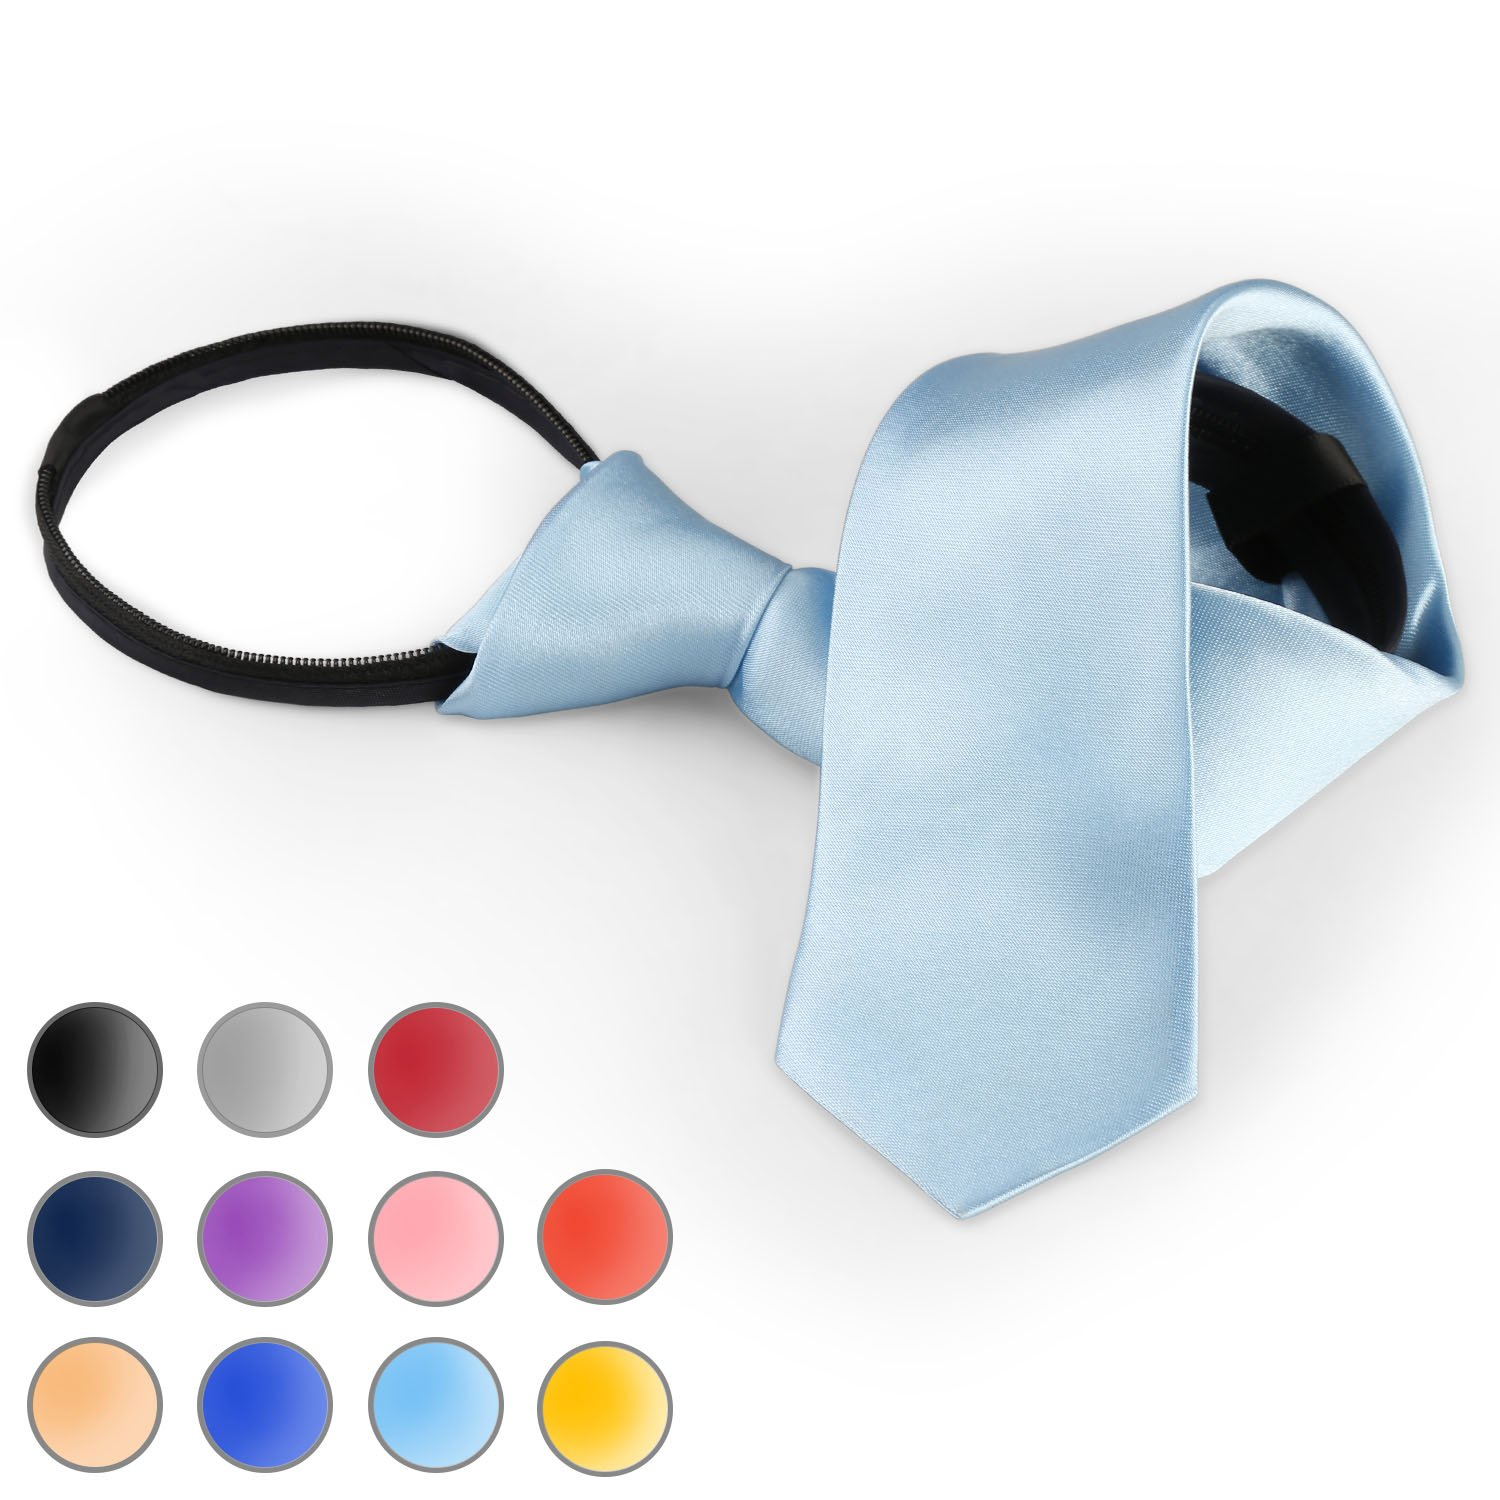 Brooben Boys Satin Zipper Neck Tie 14 inch Children Wedding Tie NK1 Navy